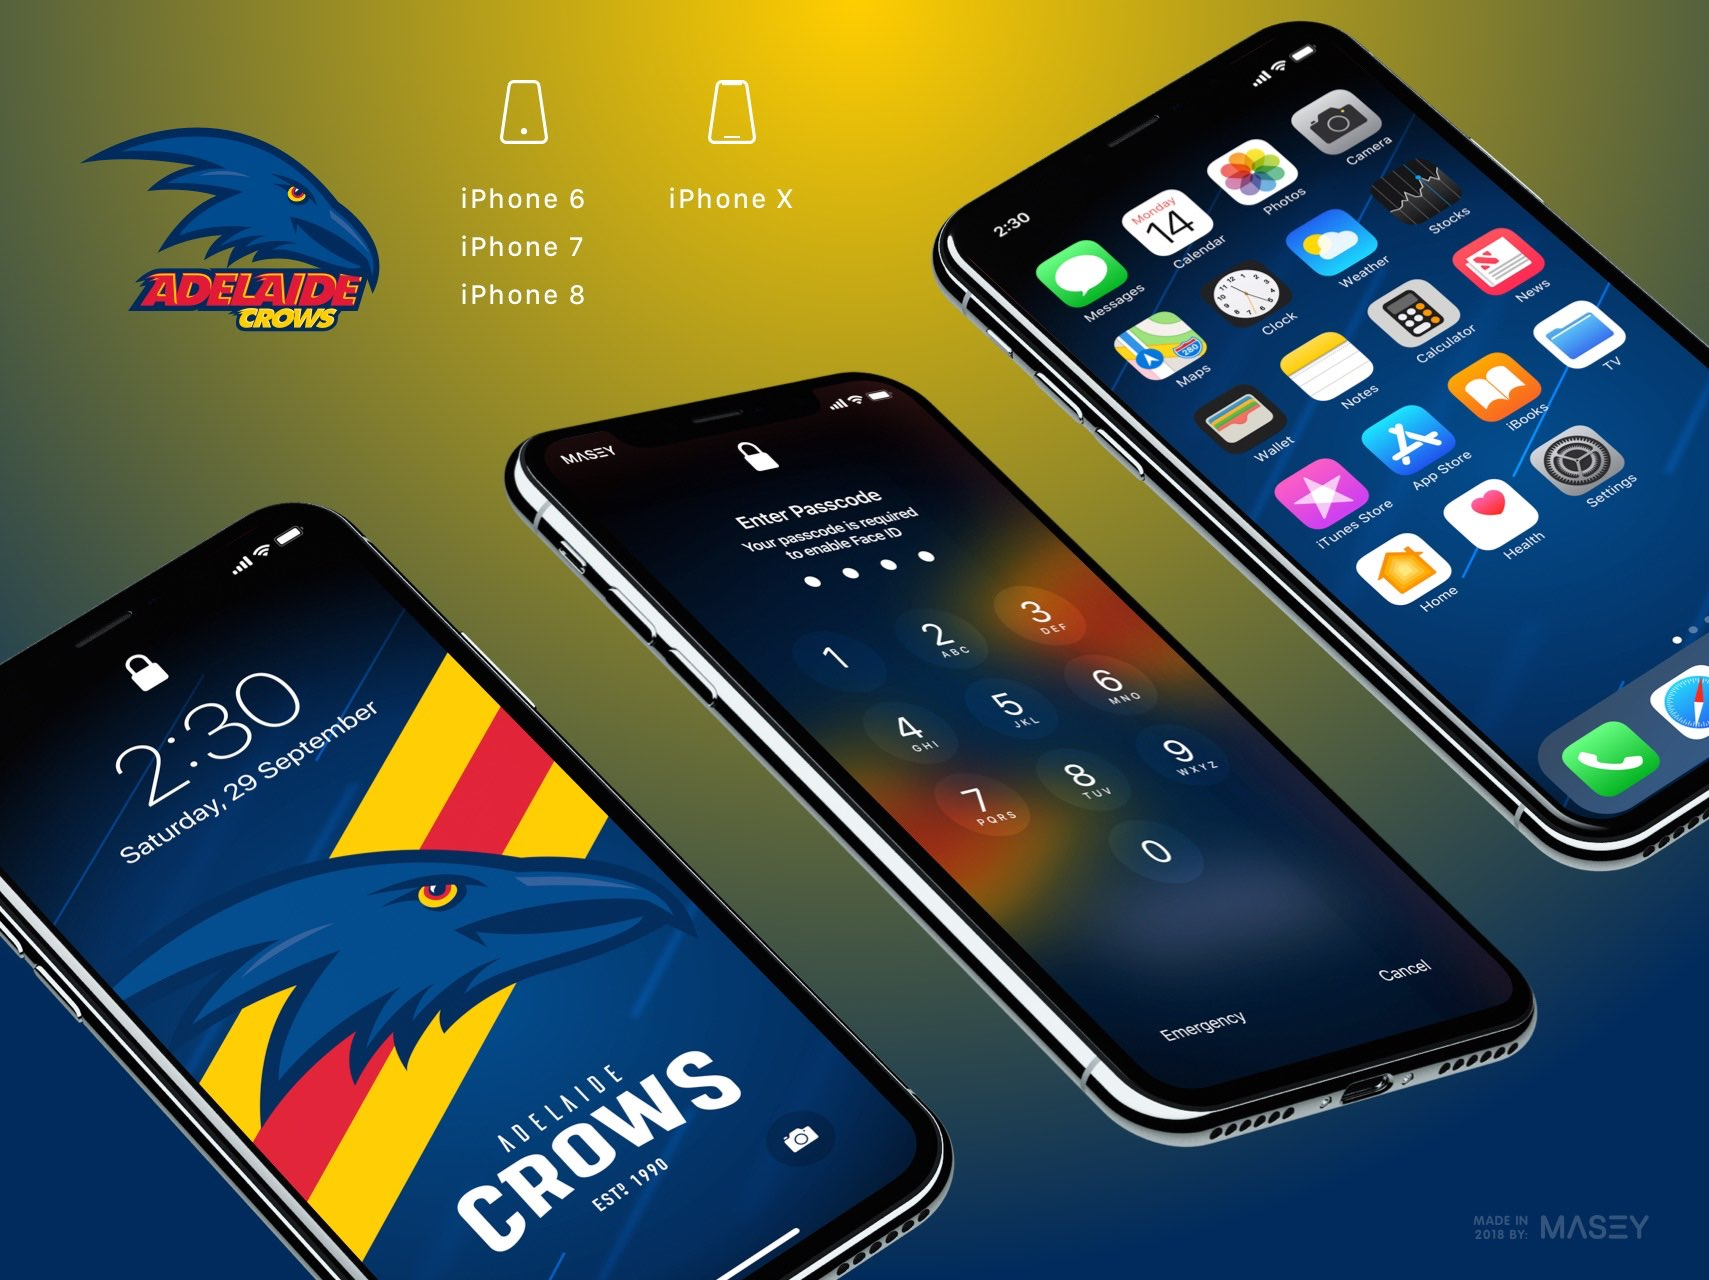 Adelaide Crows iPhone Wallpaper